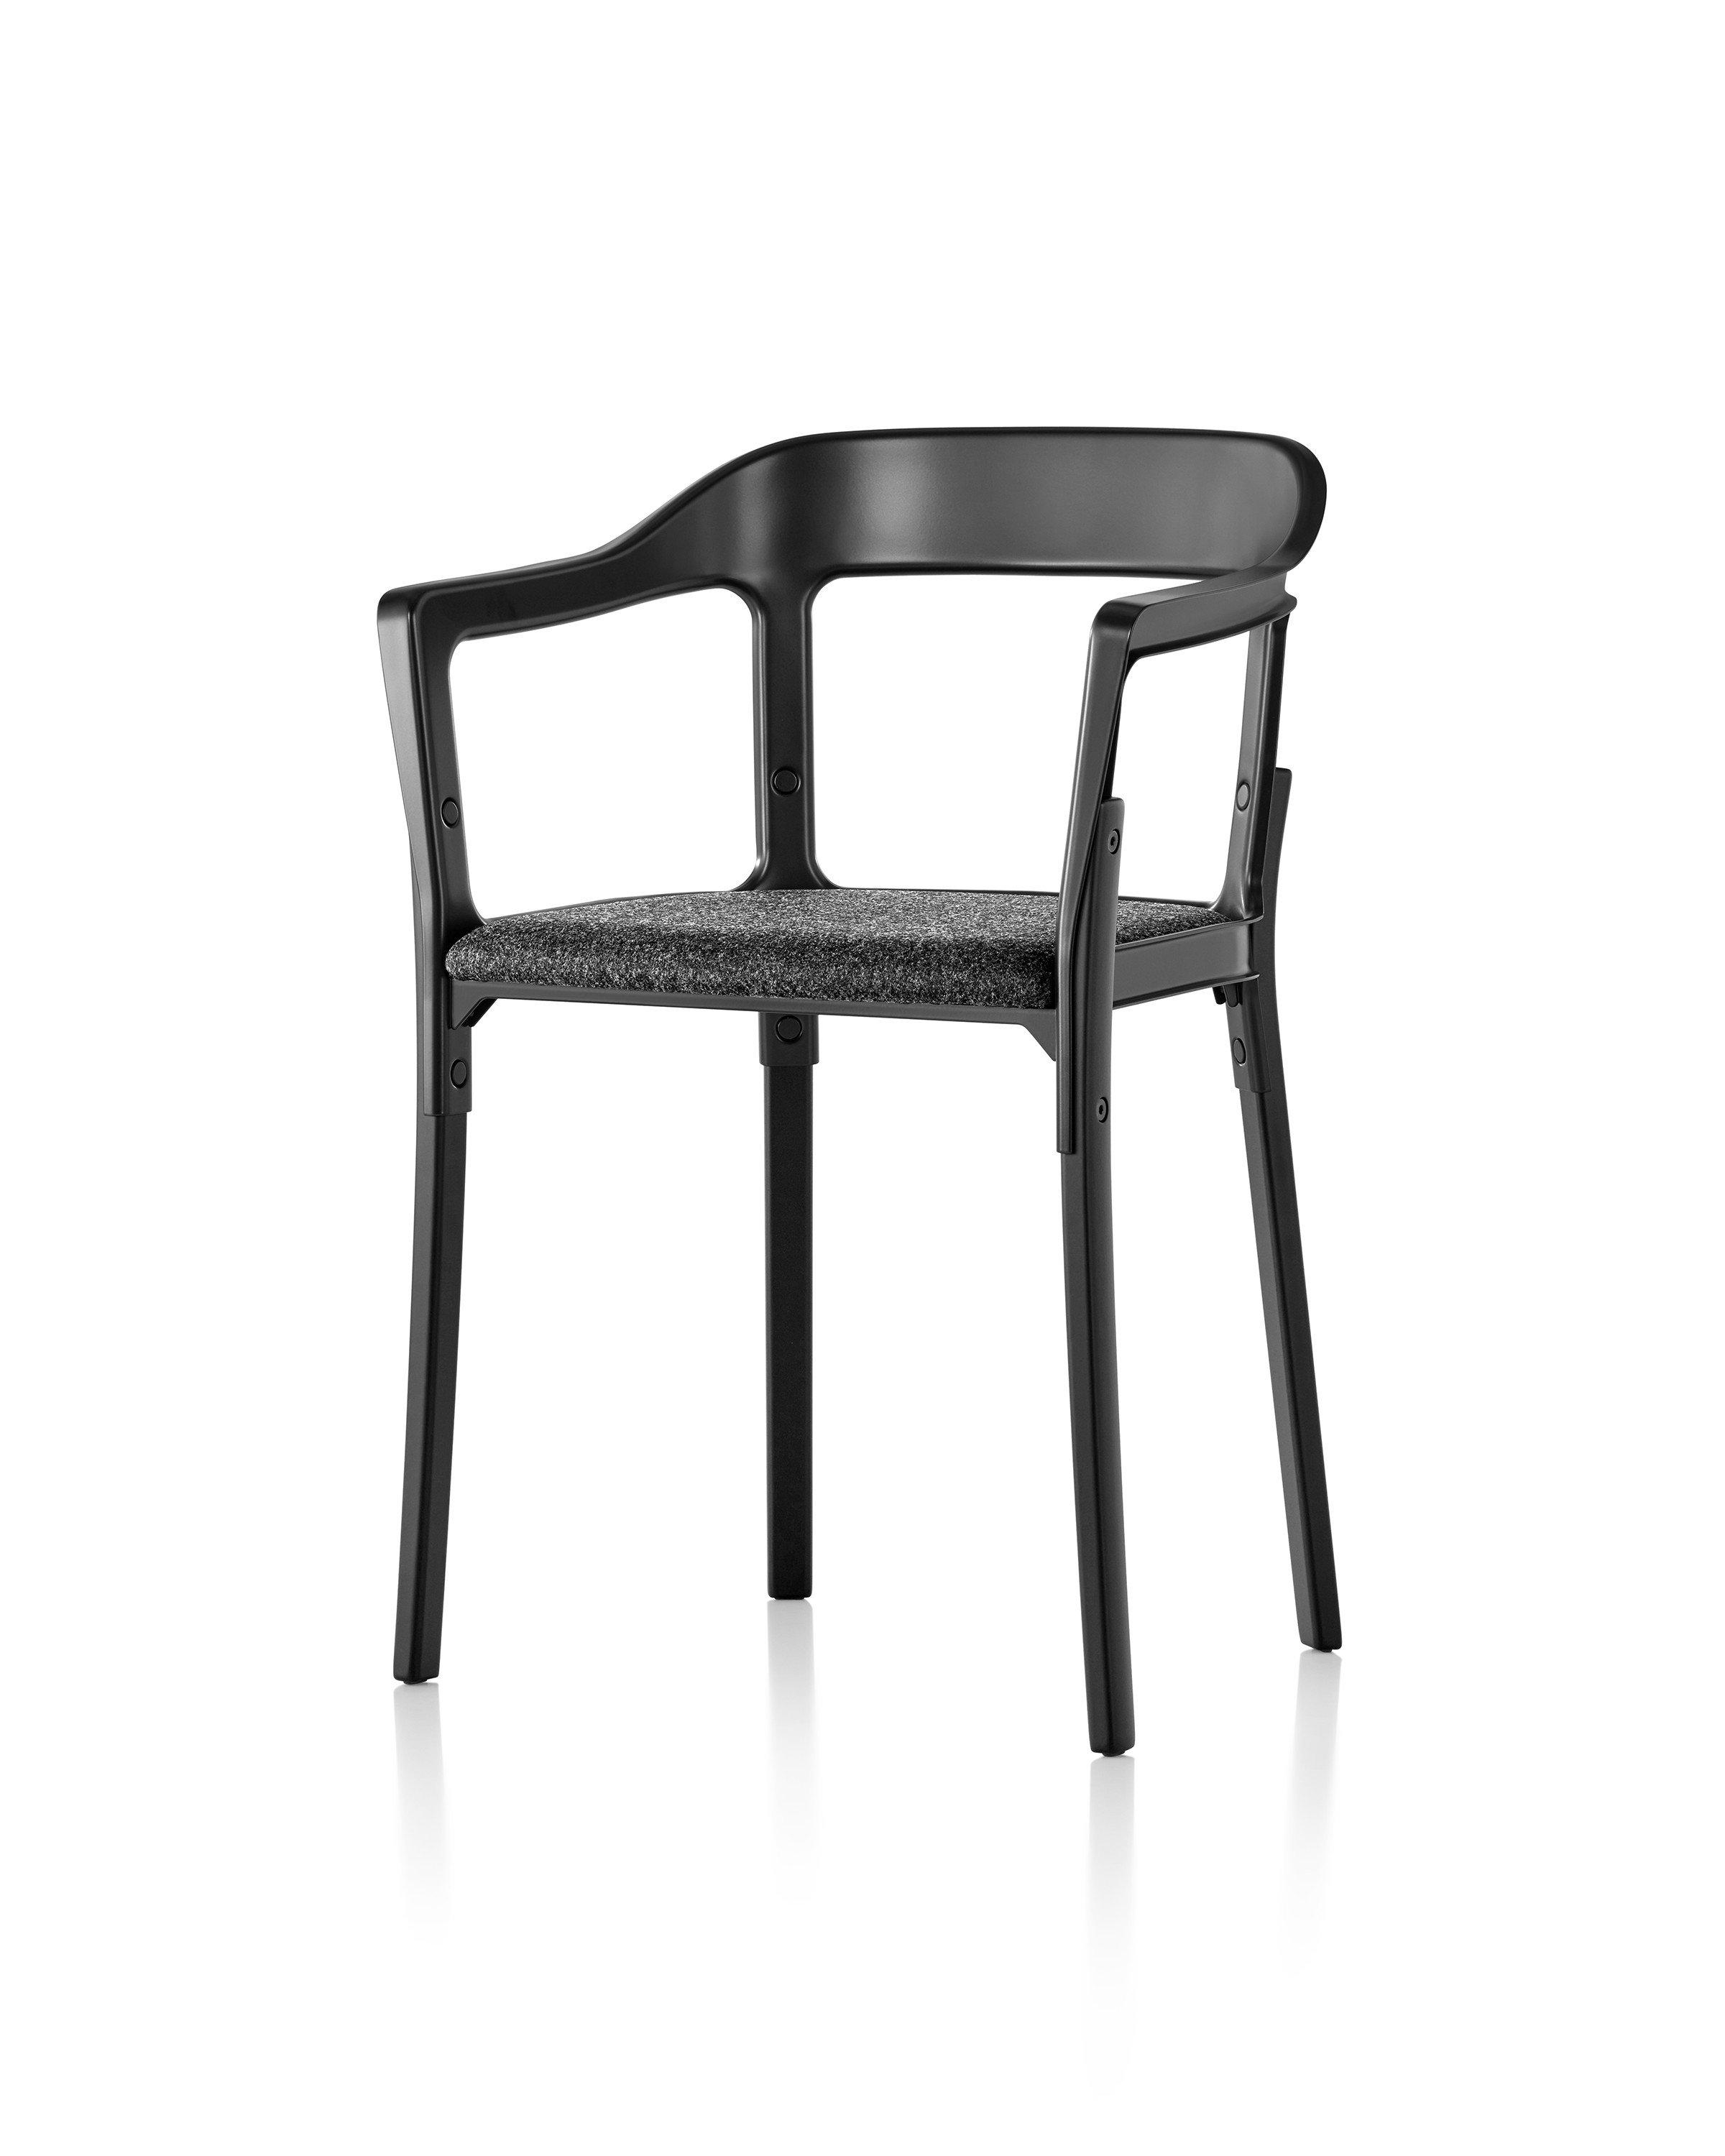 images low chair magis product steelwood miller side p herman seating products resolution mag guest chairs upholstered li